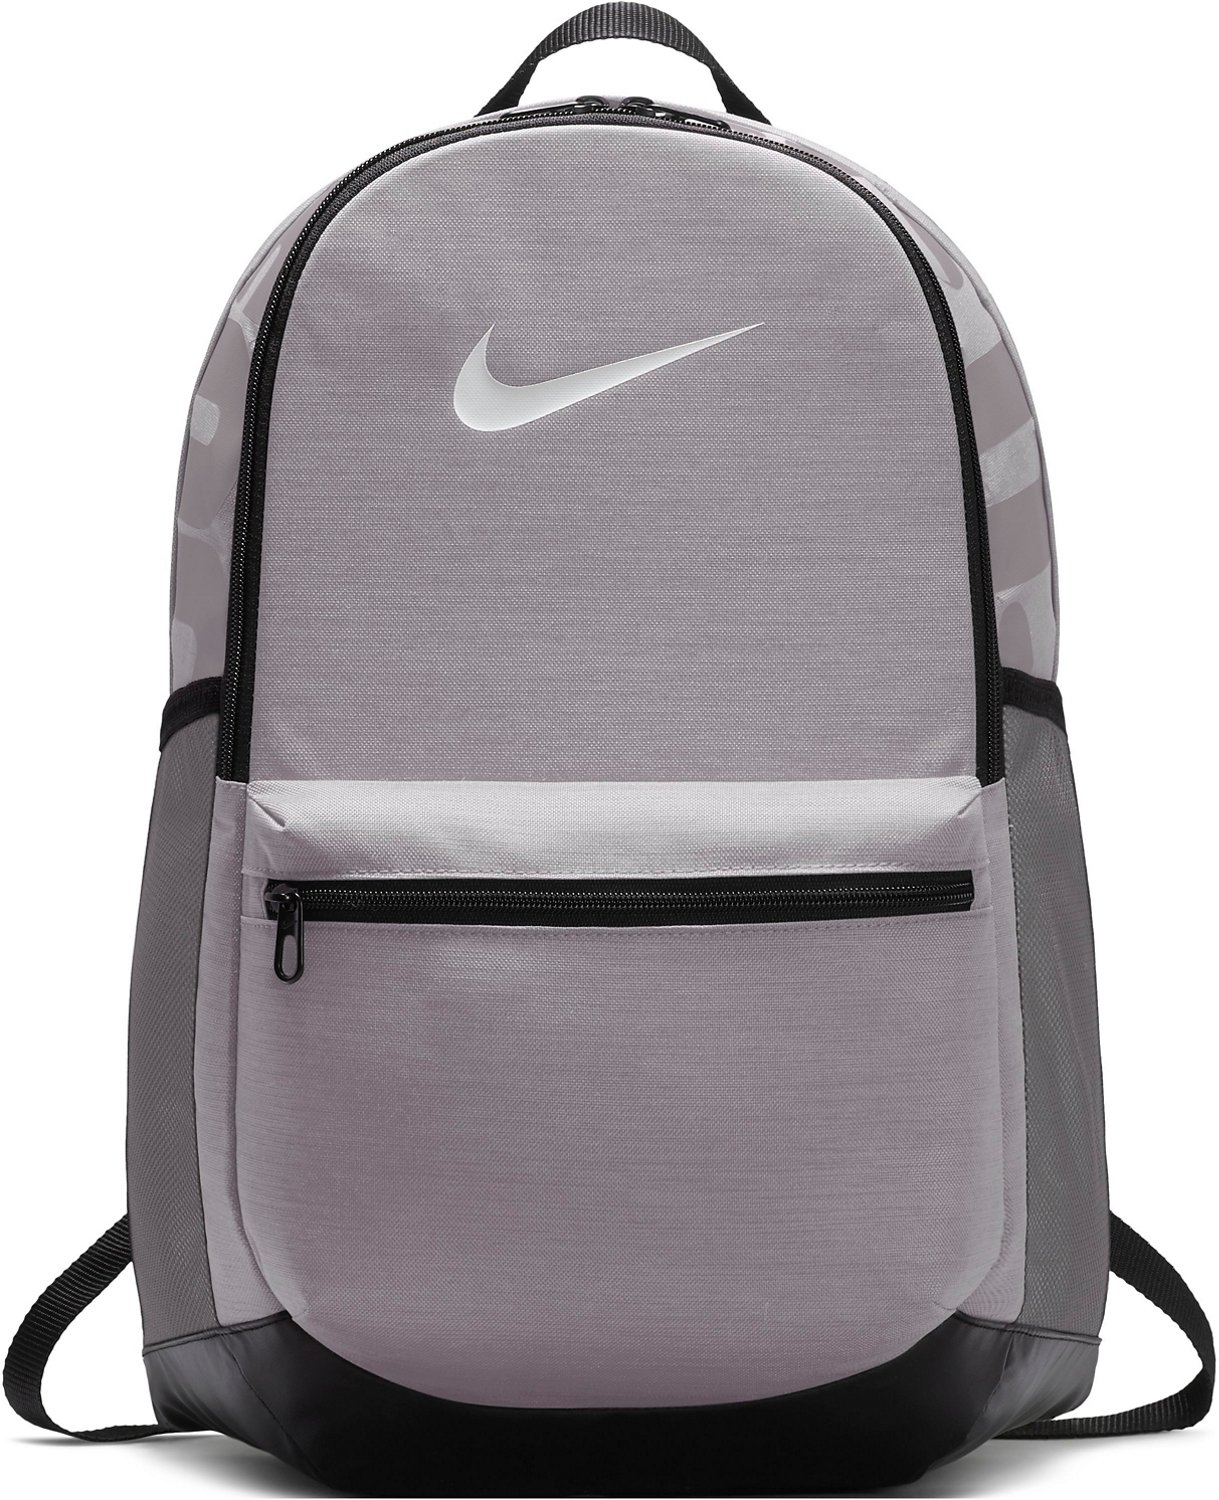 1201a226a Display product reviews for Nike Brasilia II Backpack